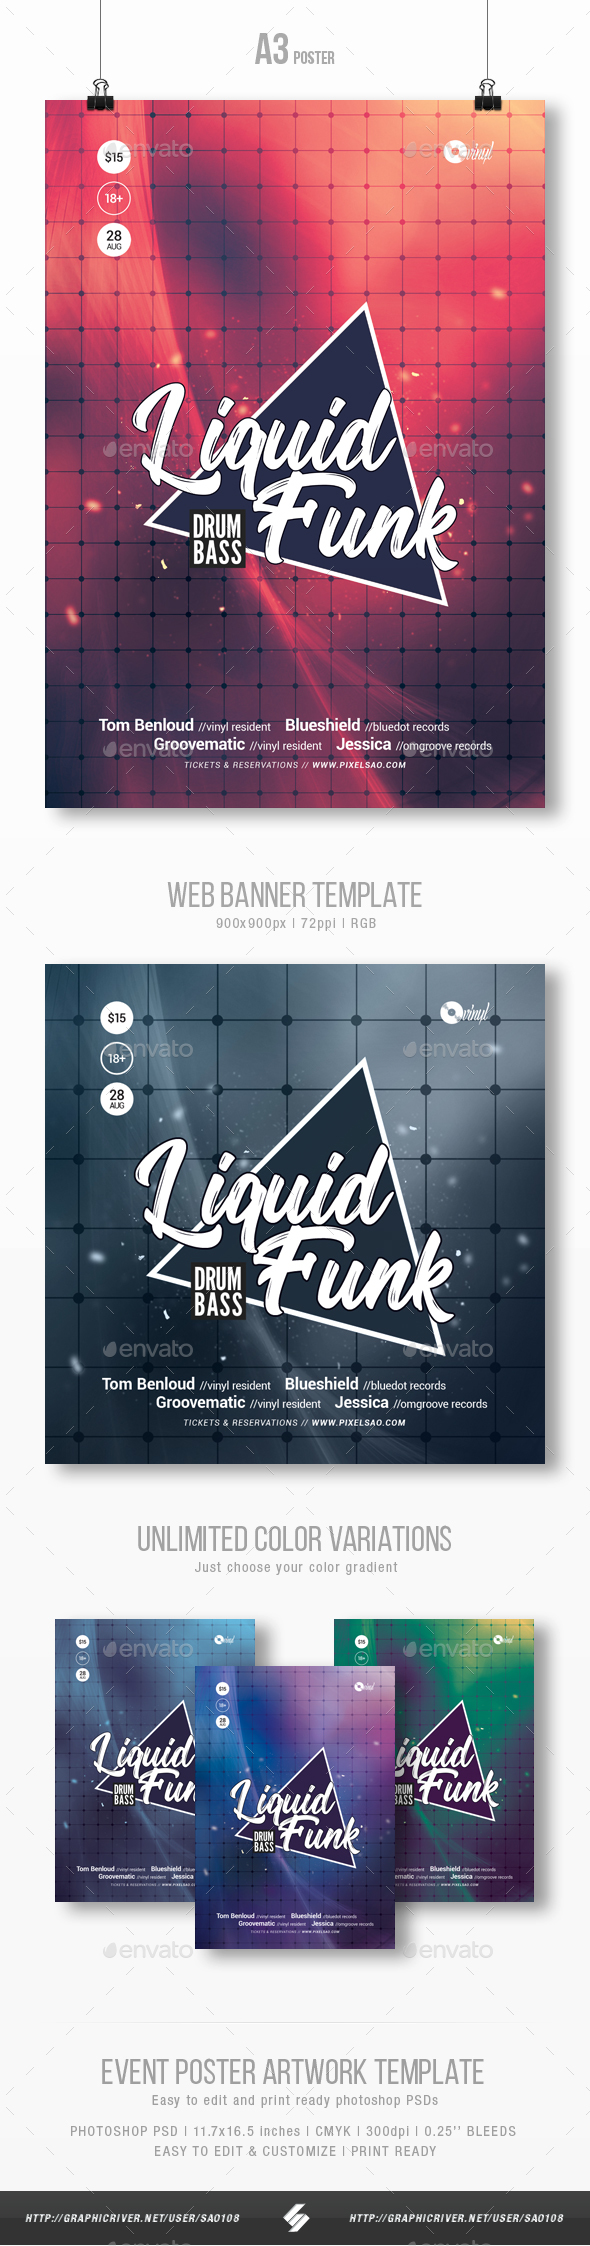 Liquid Funk - Club Party Flyer / Poster Template A3 - Clubs & Parties Events